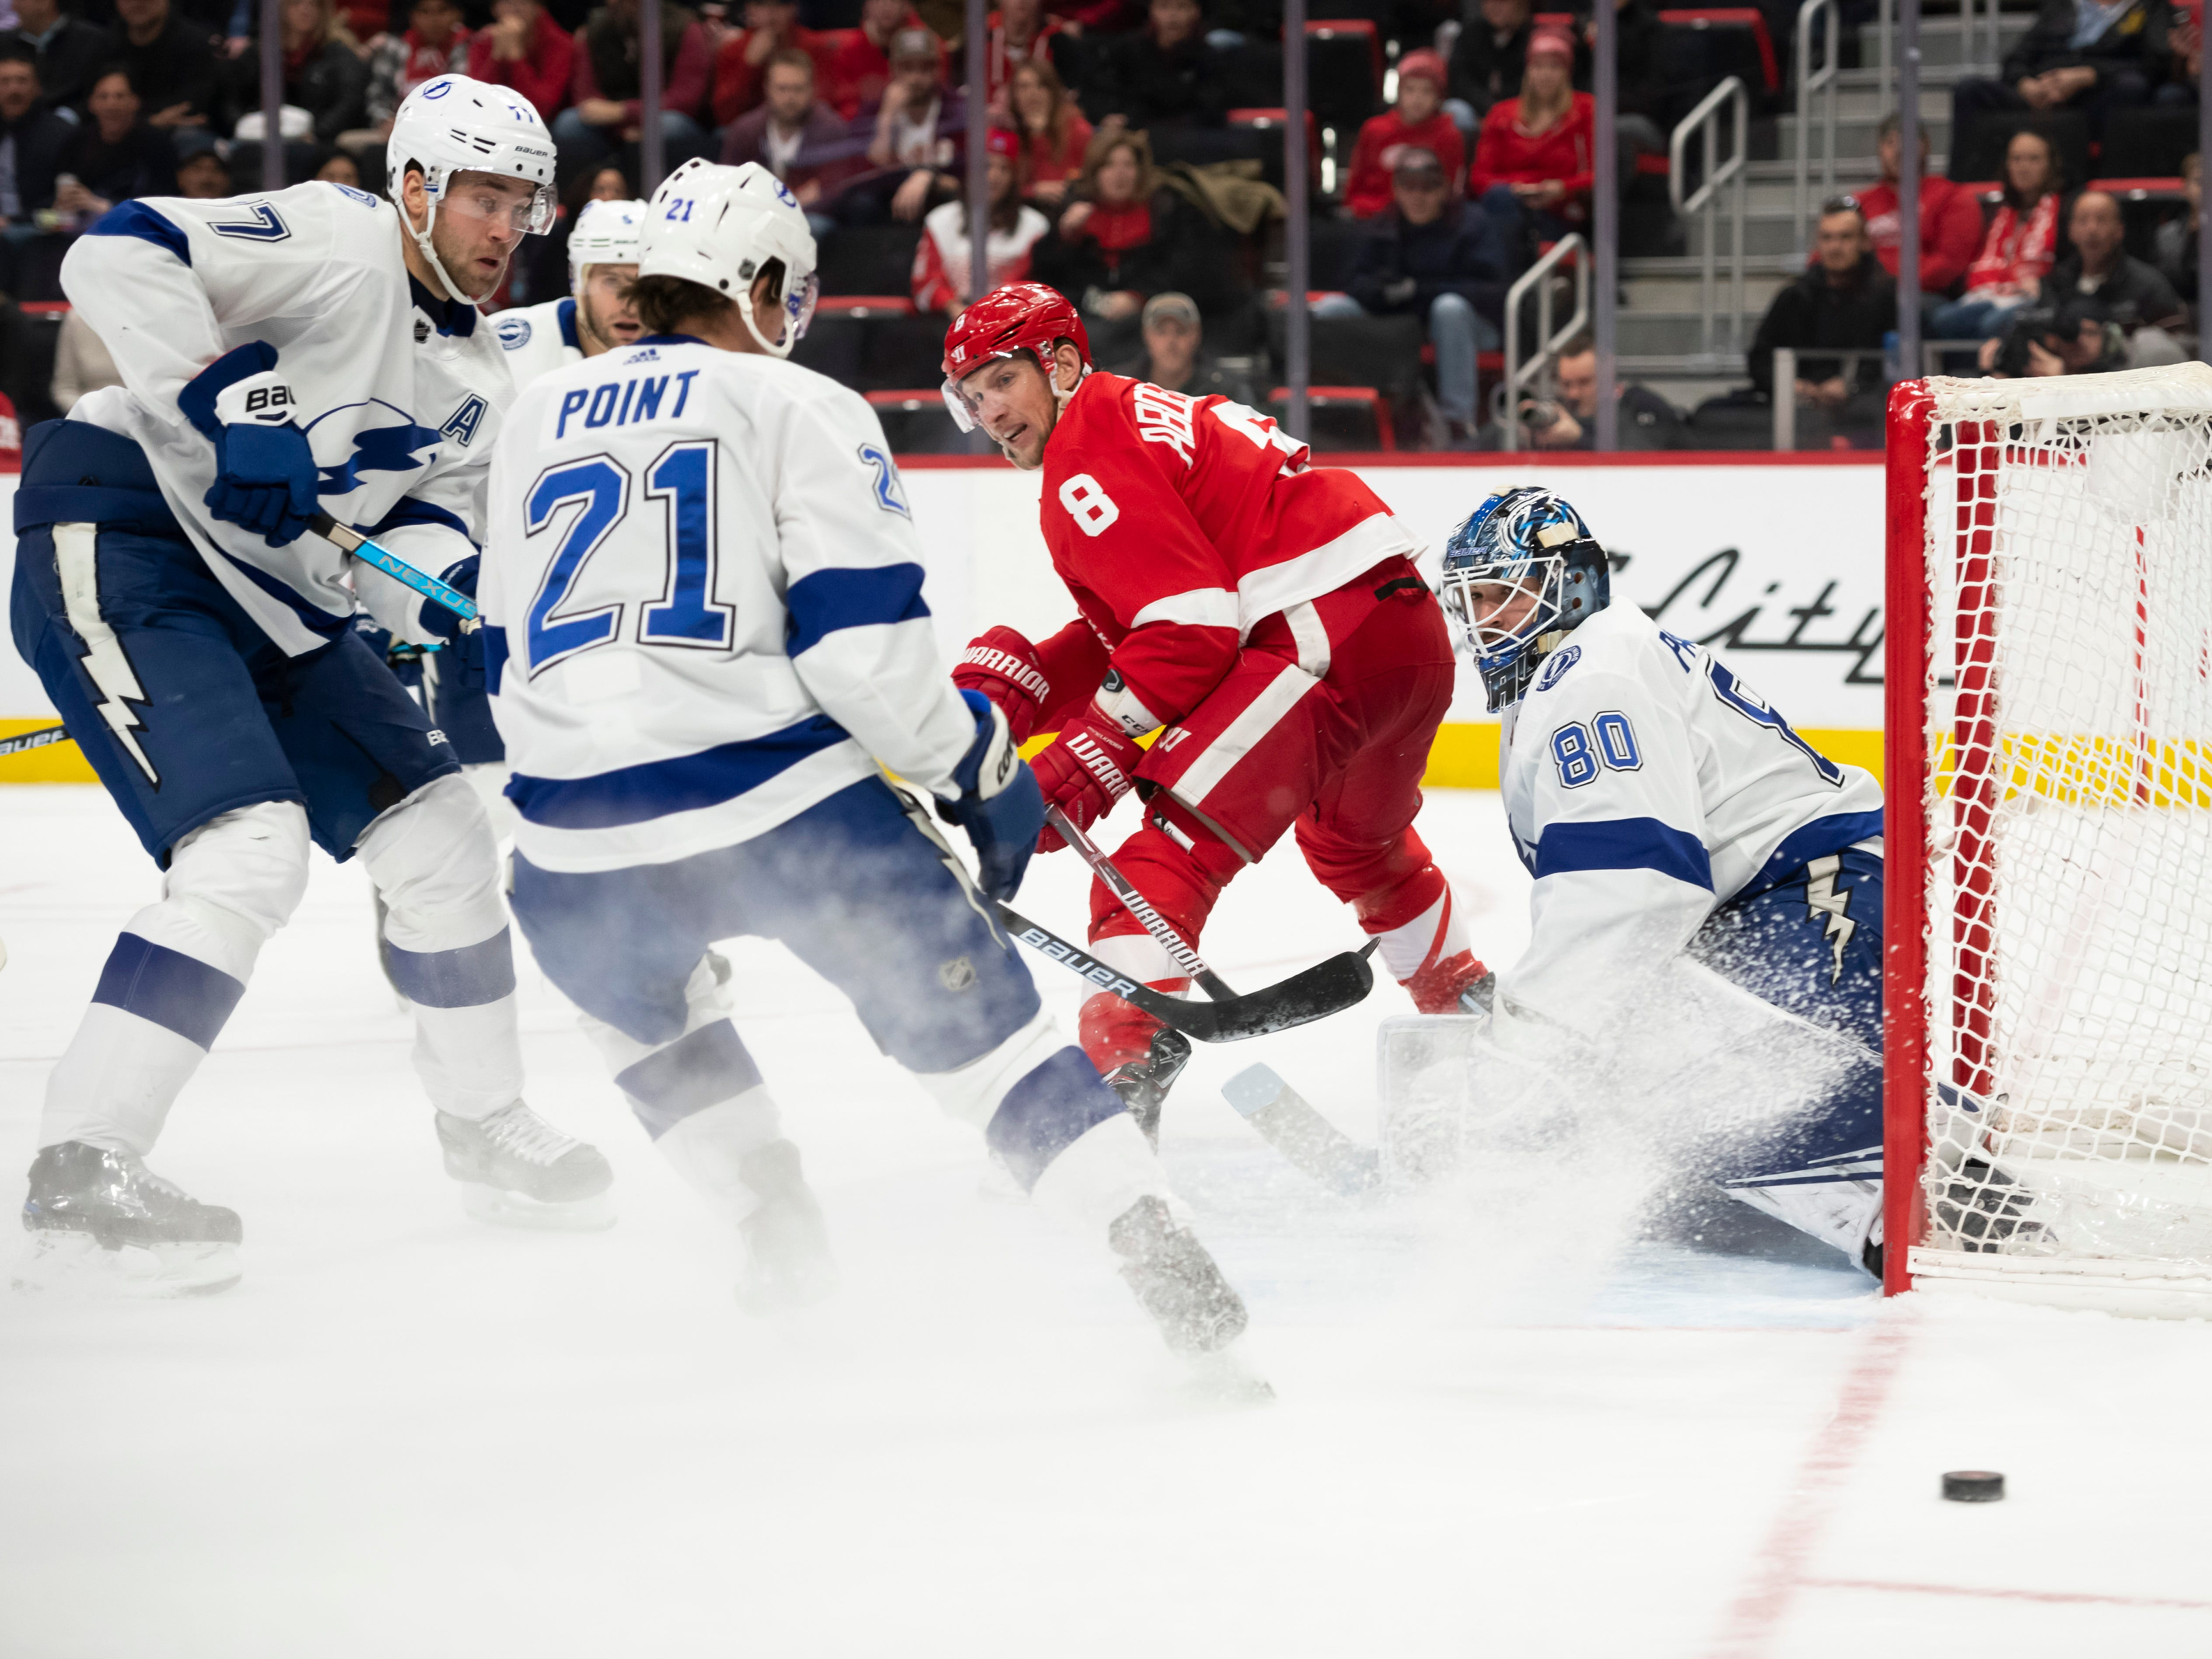 Detroit left wing Justin Abdelkader fights for position in front of Tampa's net in the first period.